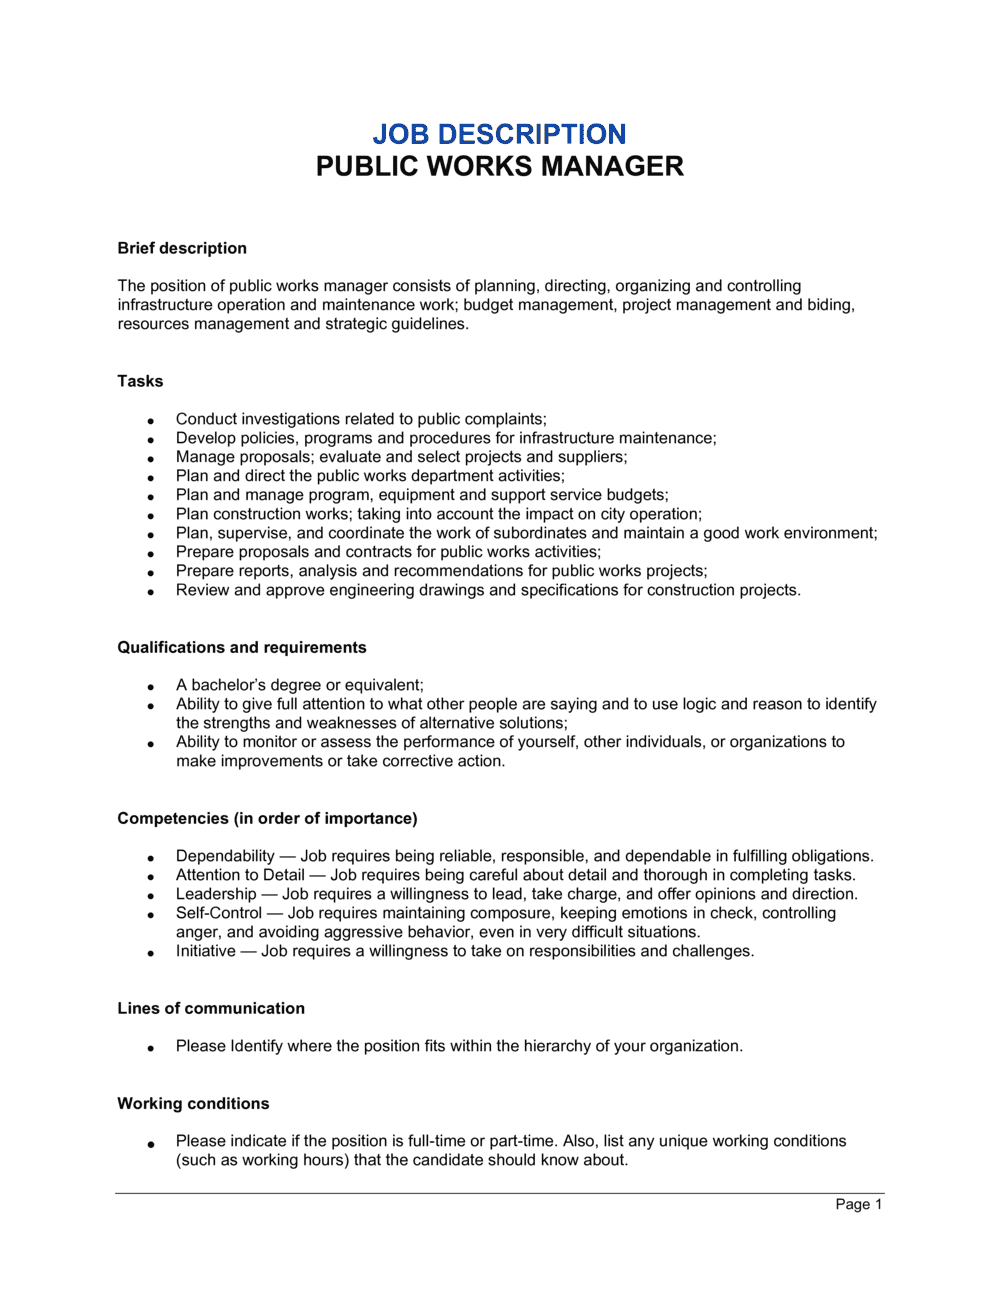 Business-in-a-Box's Public Works Manager Job Description Template